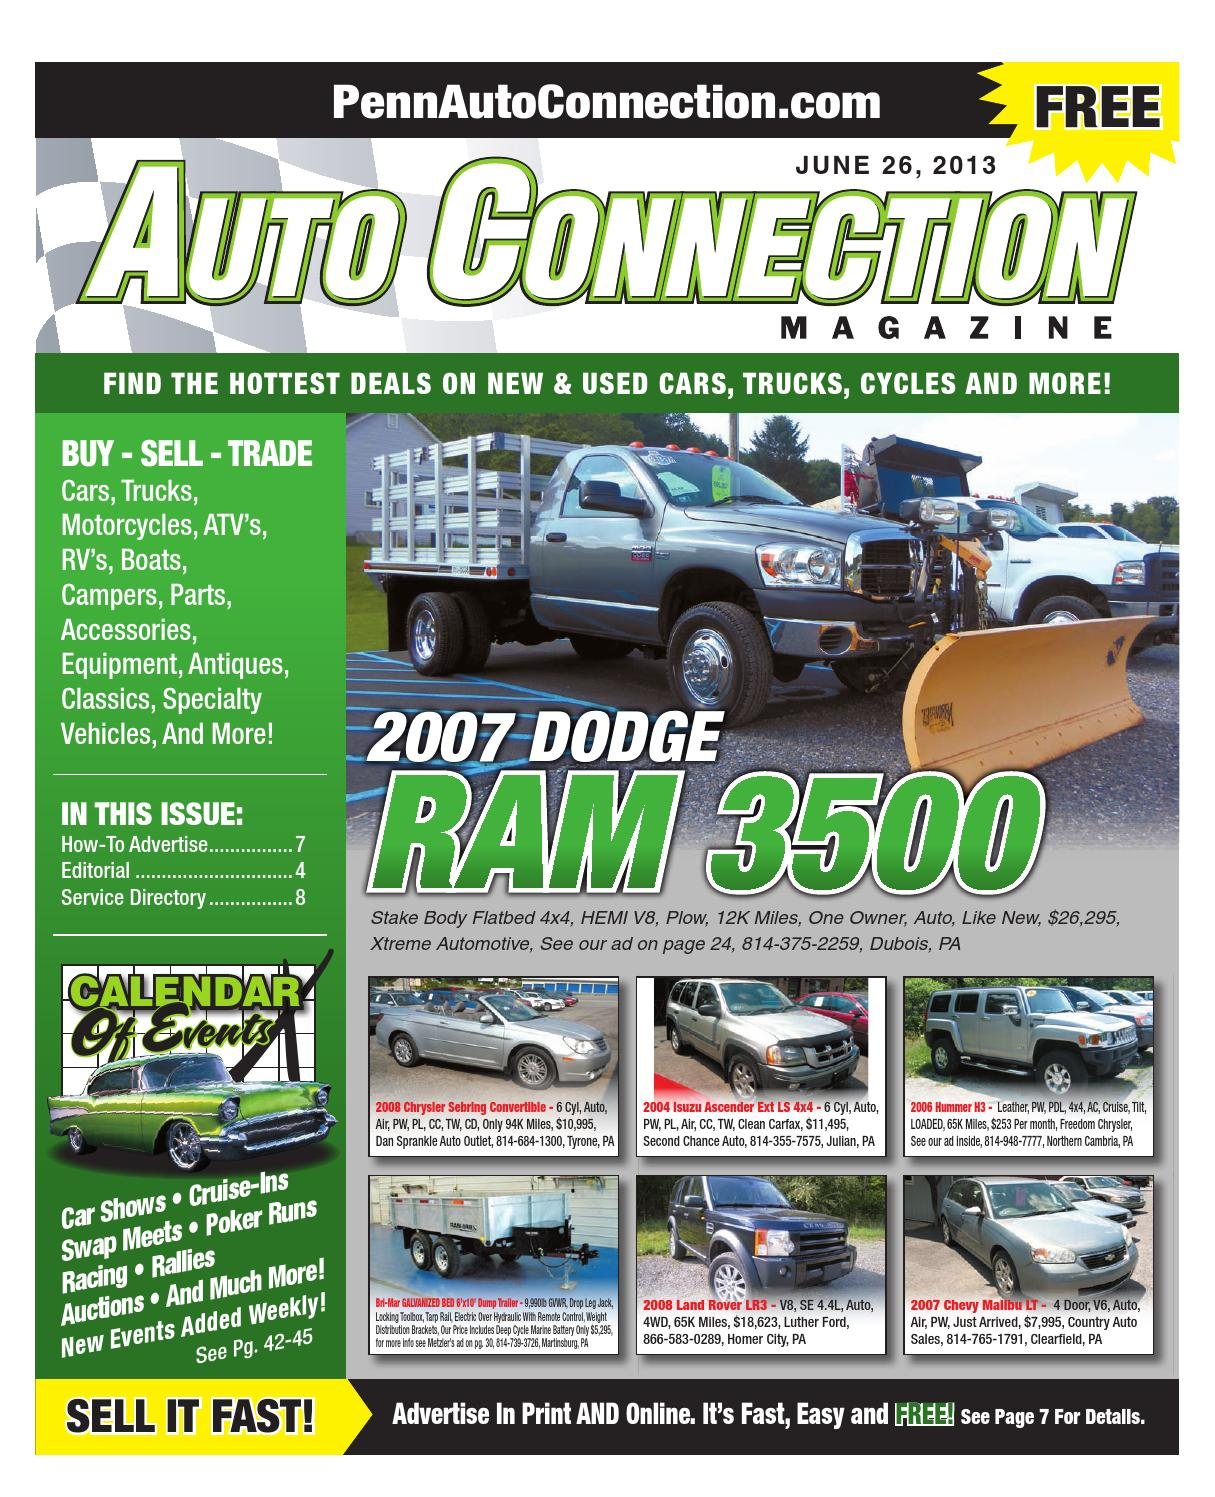 06 26 13 Auto Connection Magazine By Issuu Wiring Diagrams 2002 Toyota Rav4l